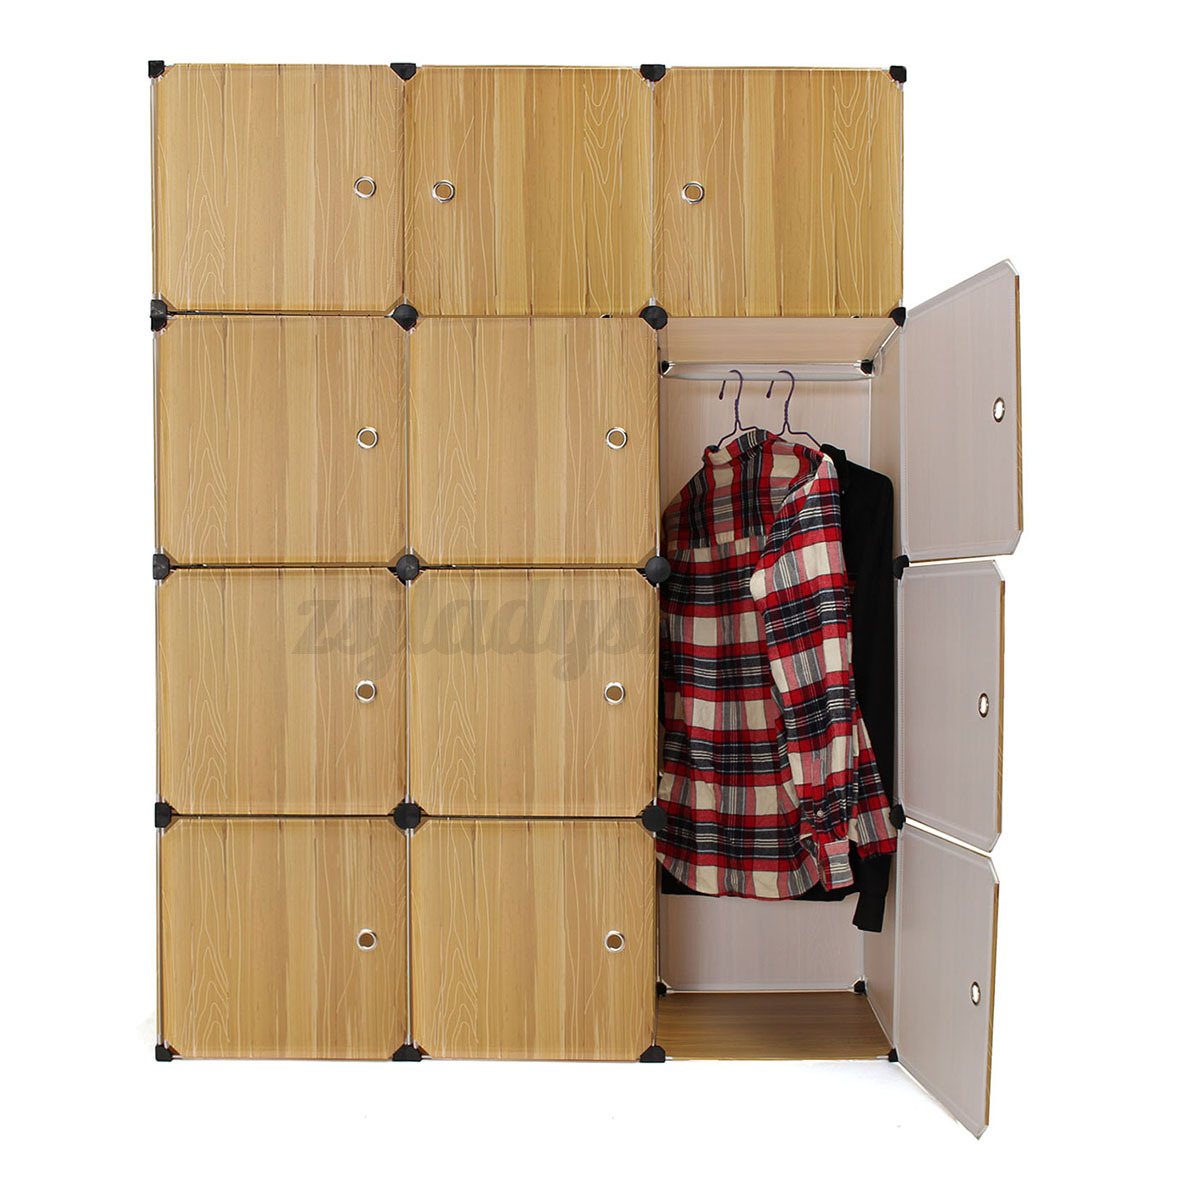 Zelt Cube Wardrobe : Cube portable clothes closet organizer cupboard